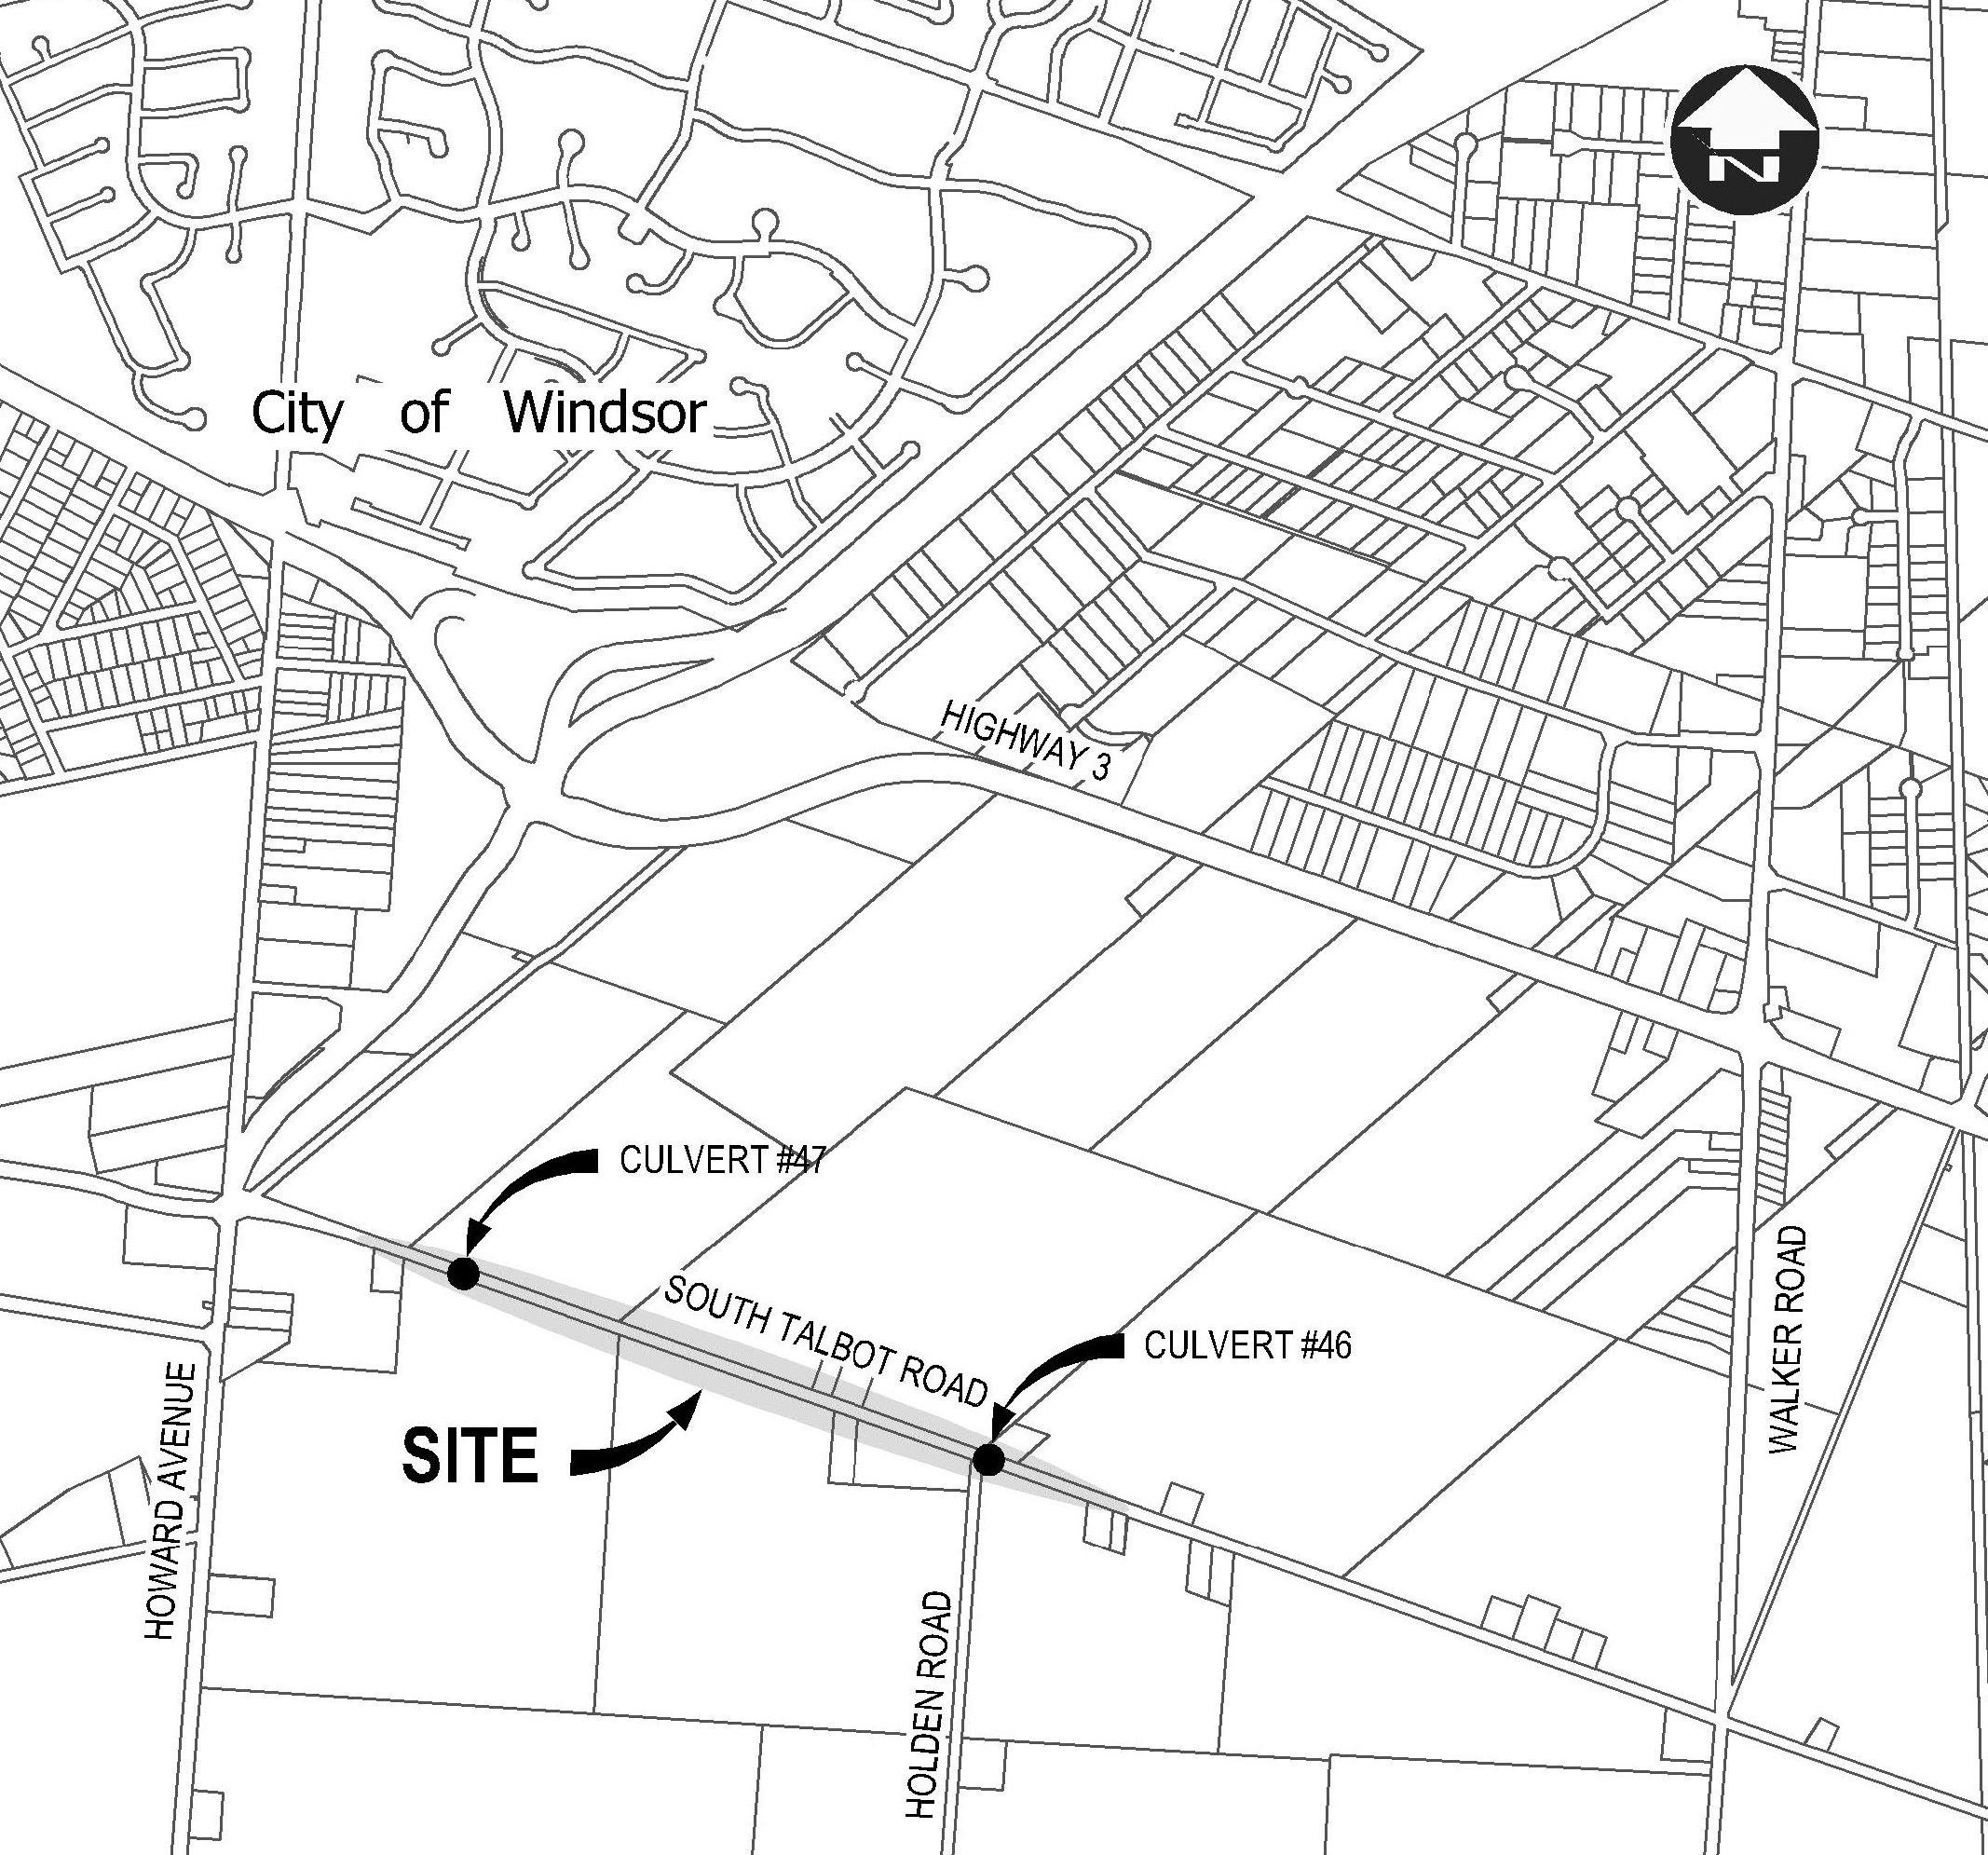 Map showing location of construction on South Talbot Road